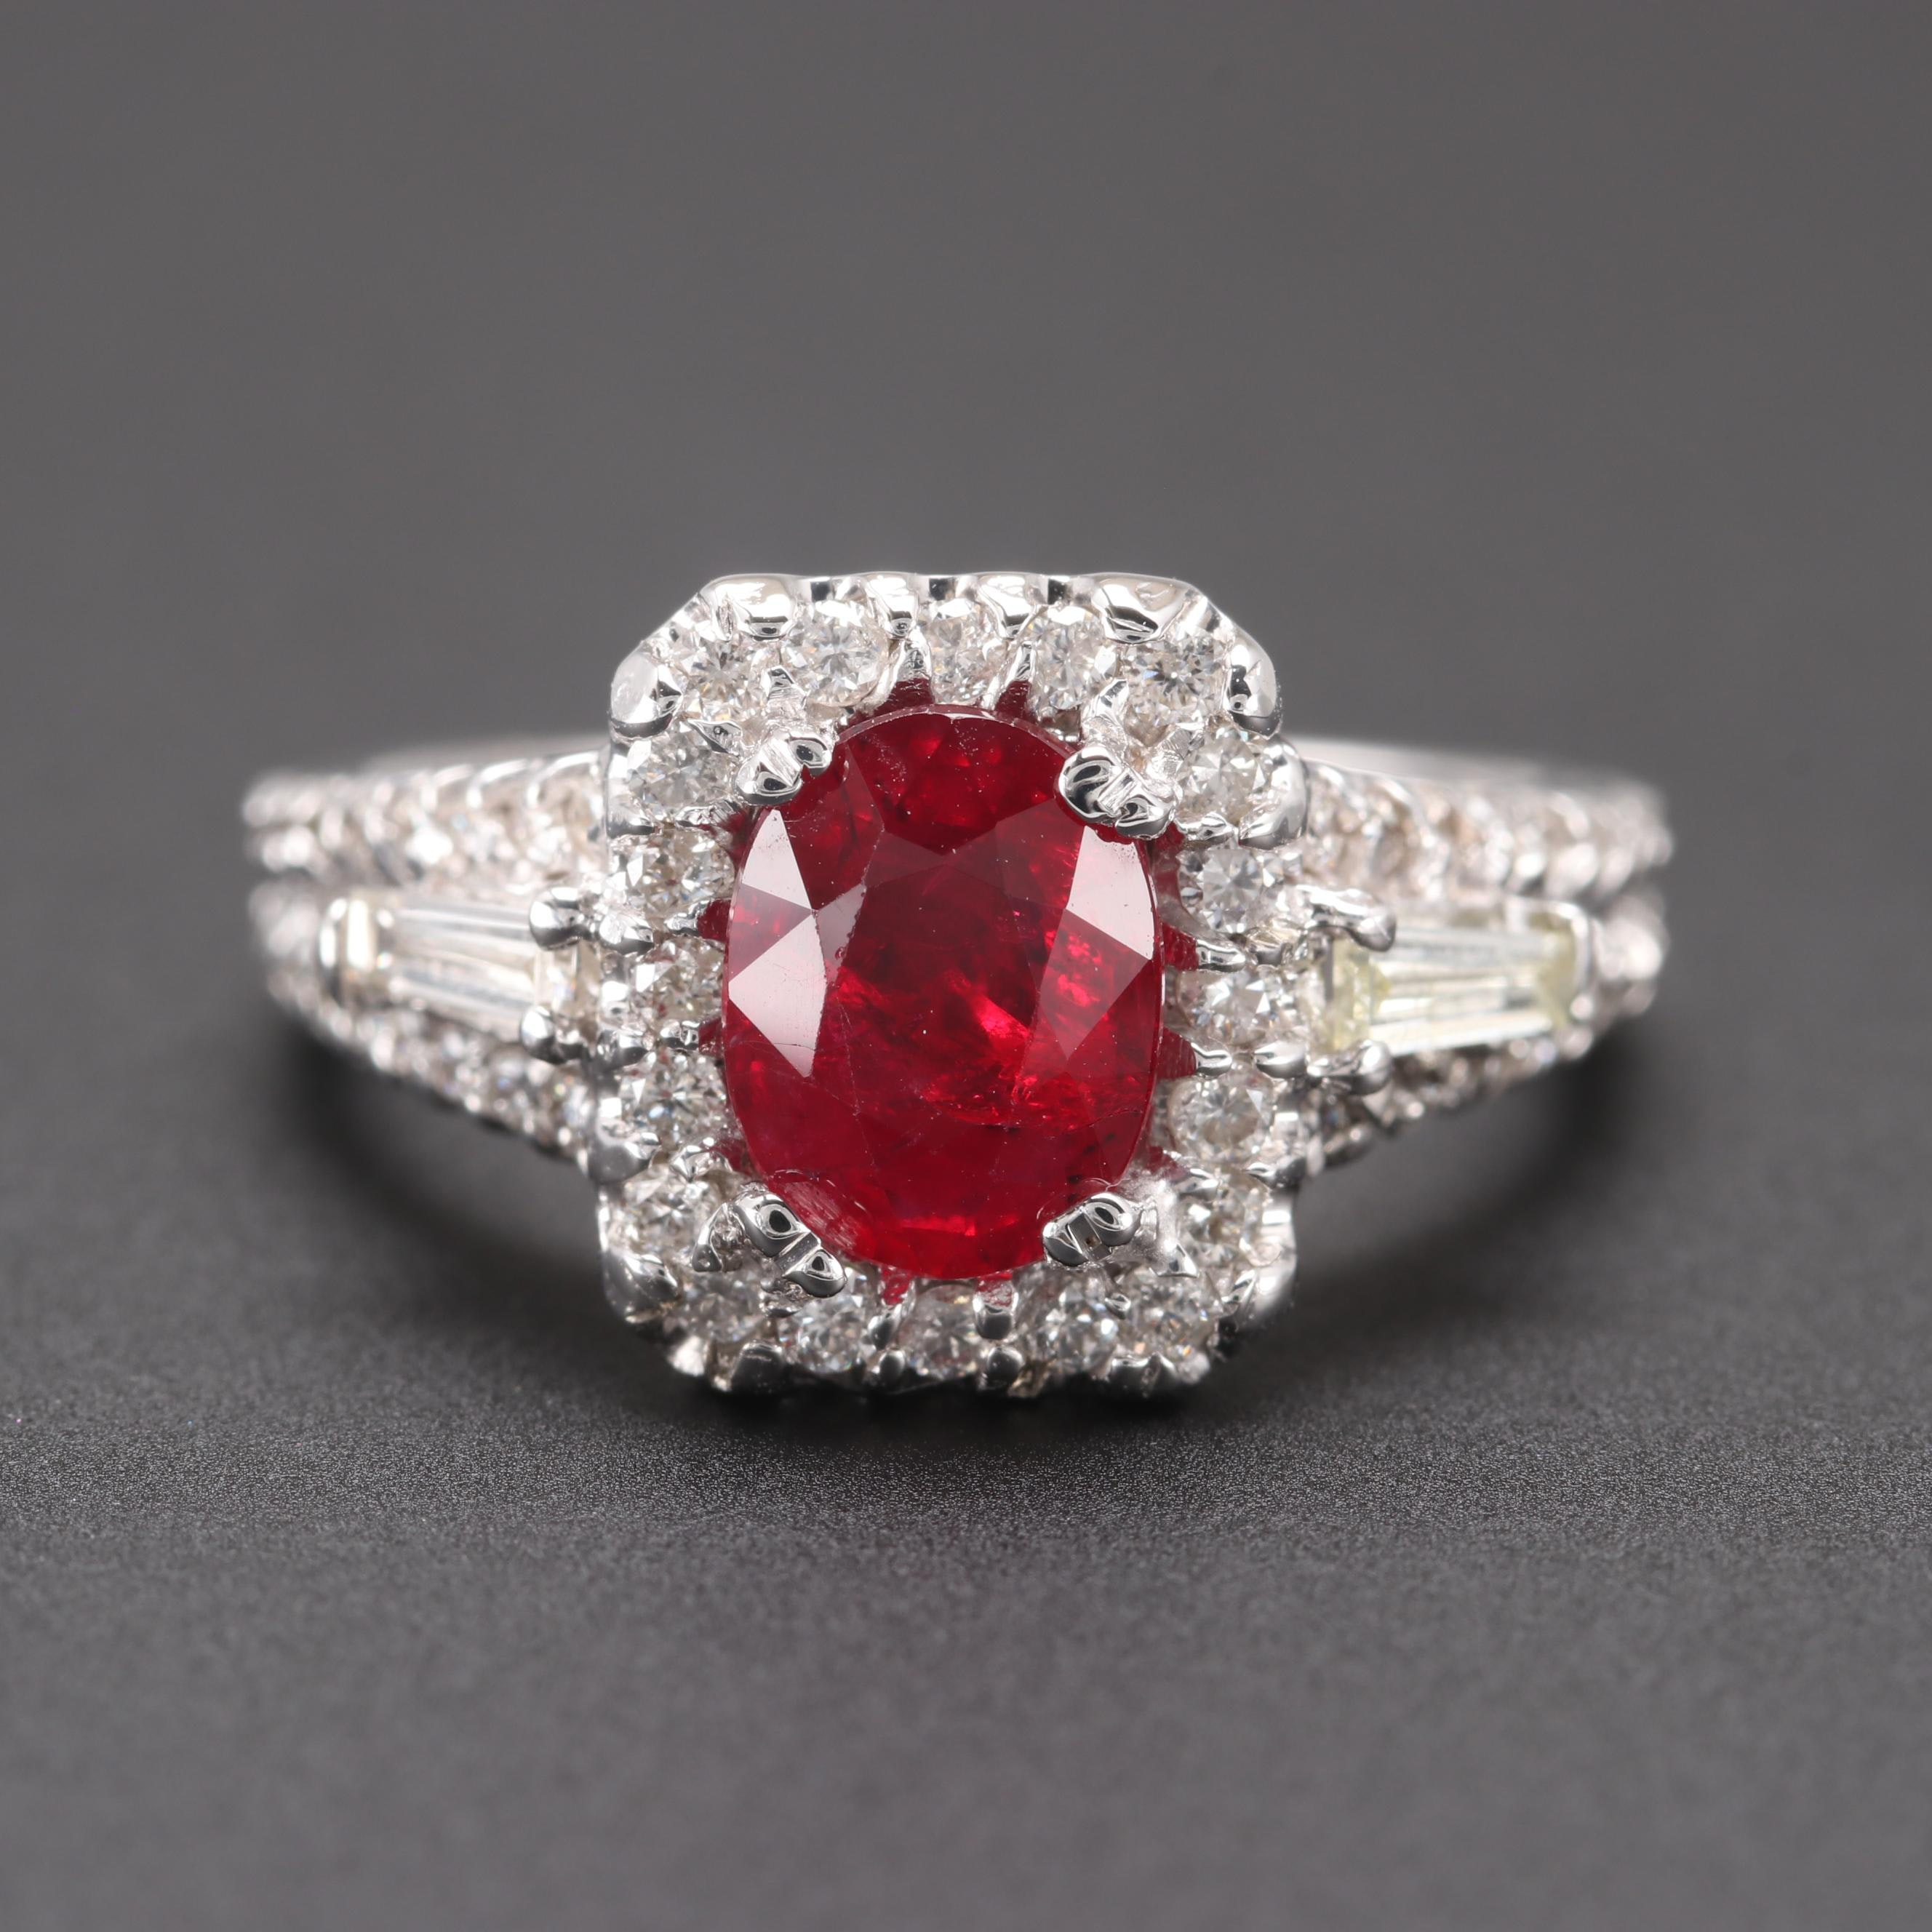 14K White Gold 1.08 CT Ruby and Diamond Ring